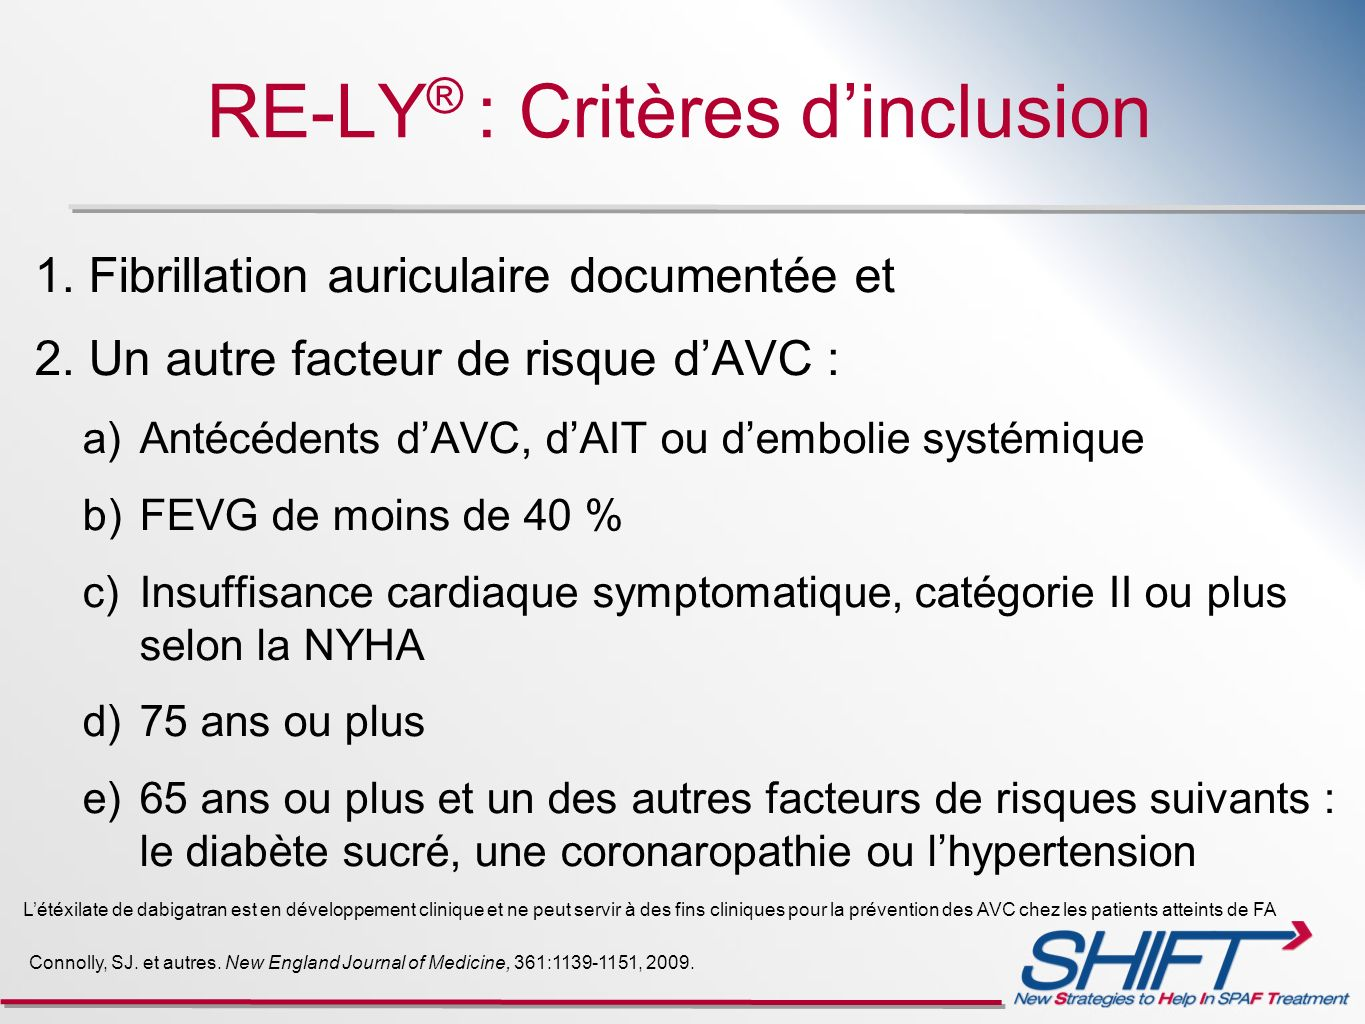 RE-LY® : Critères d'inclusion